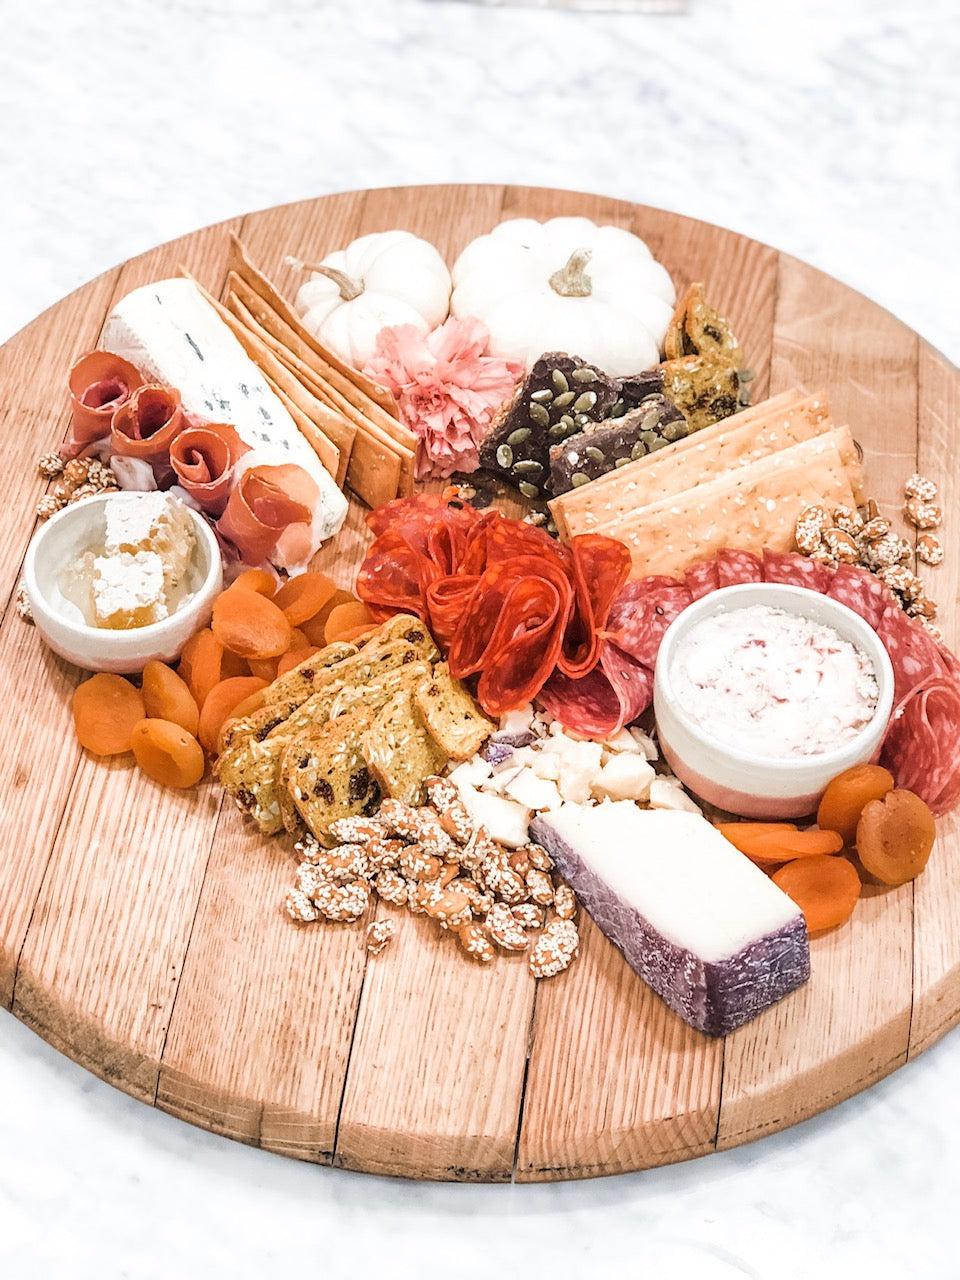 The Essential Cheese & Charcuterie Items to Keep on Hand